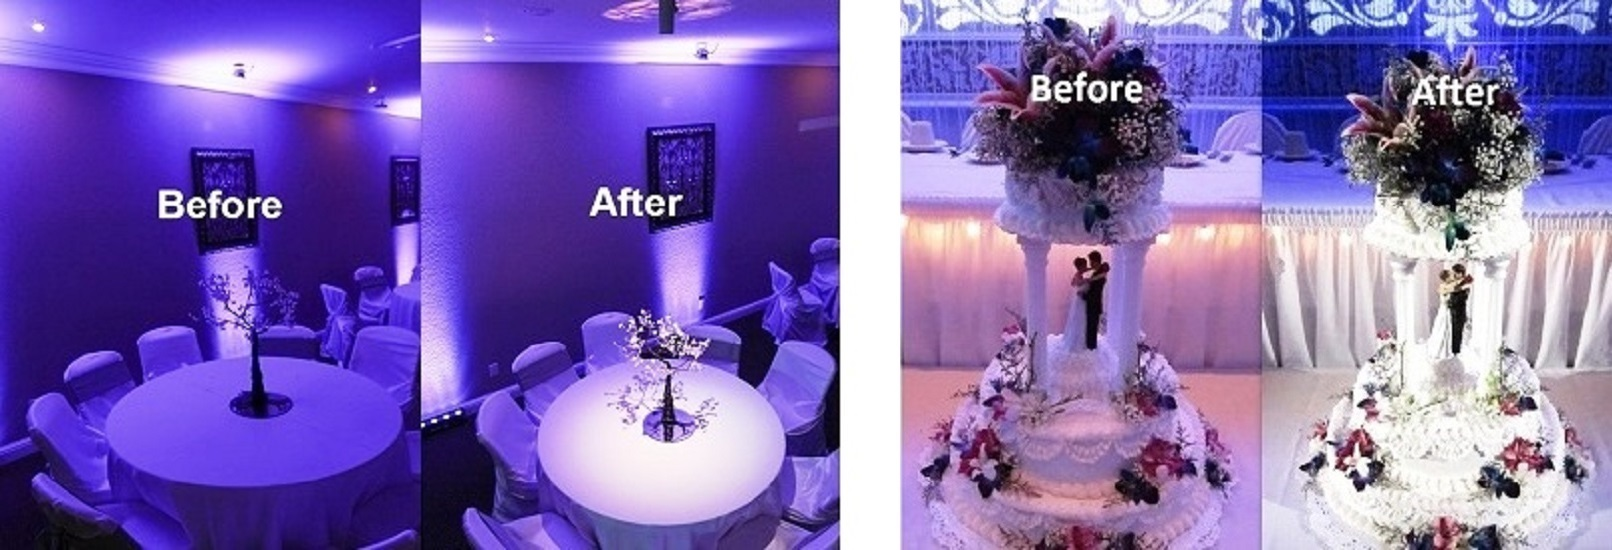 Pin Lights, Cake Lighting, Table Lighting at a Houston Wedding or event